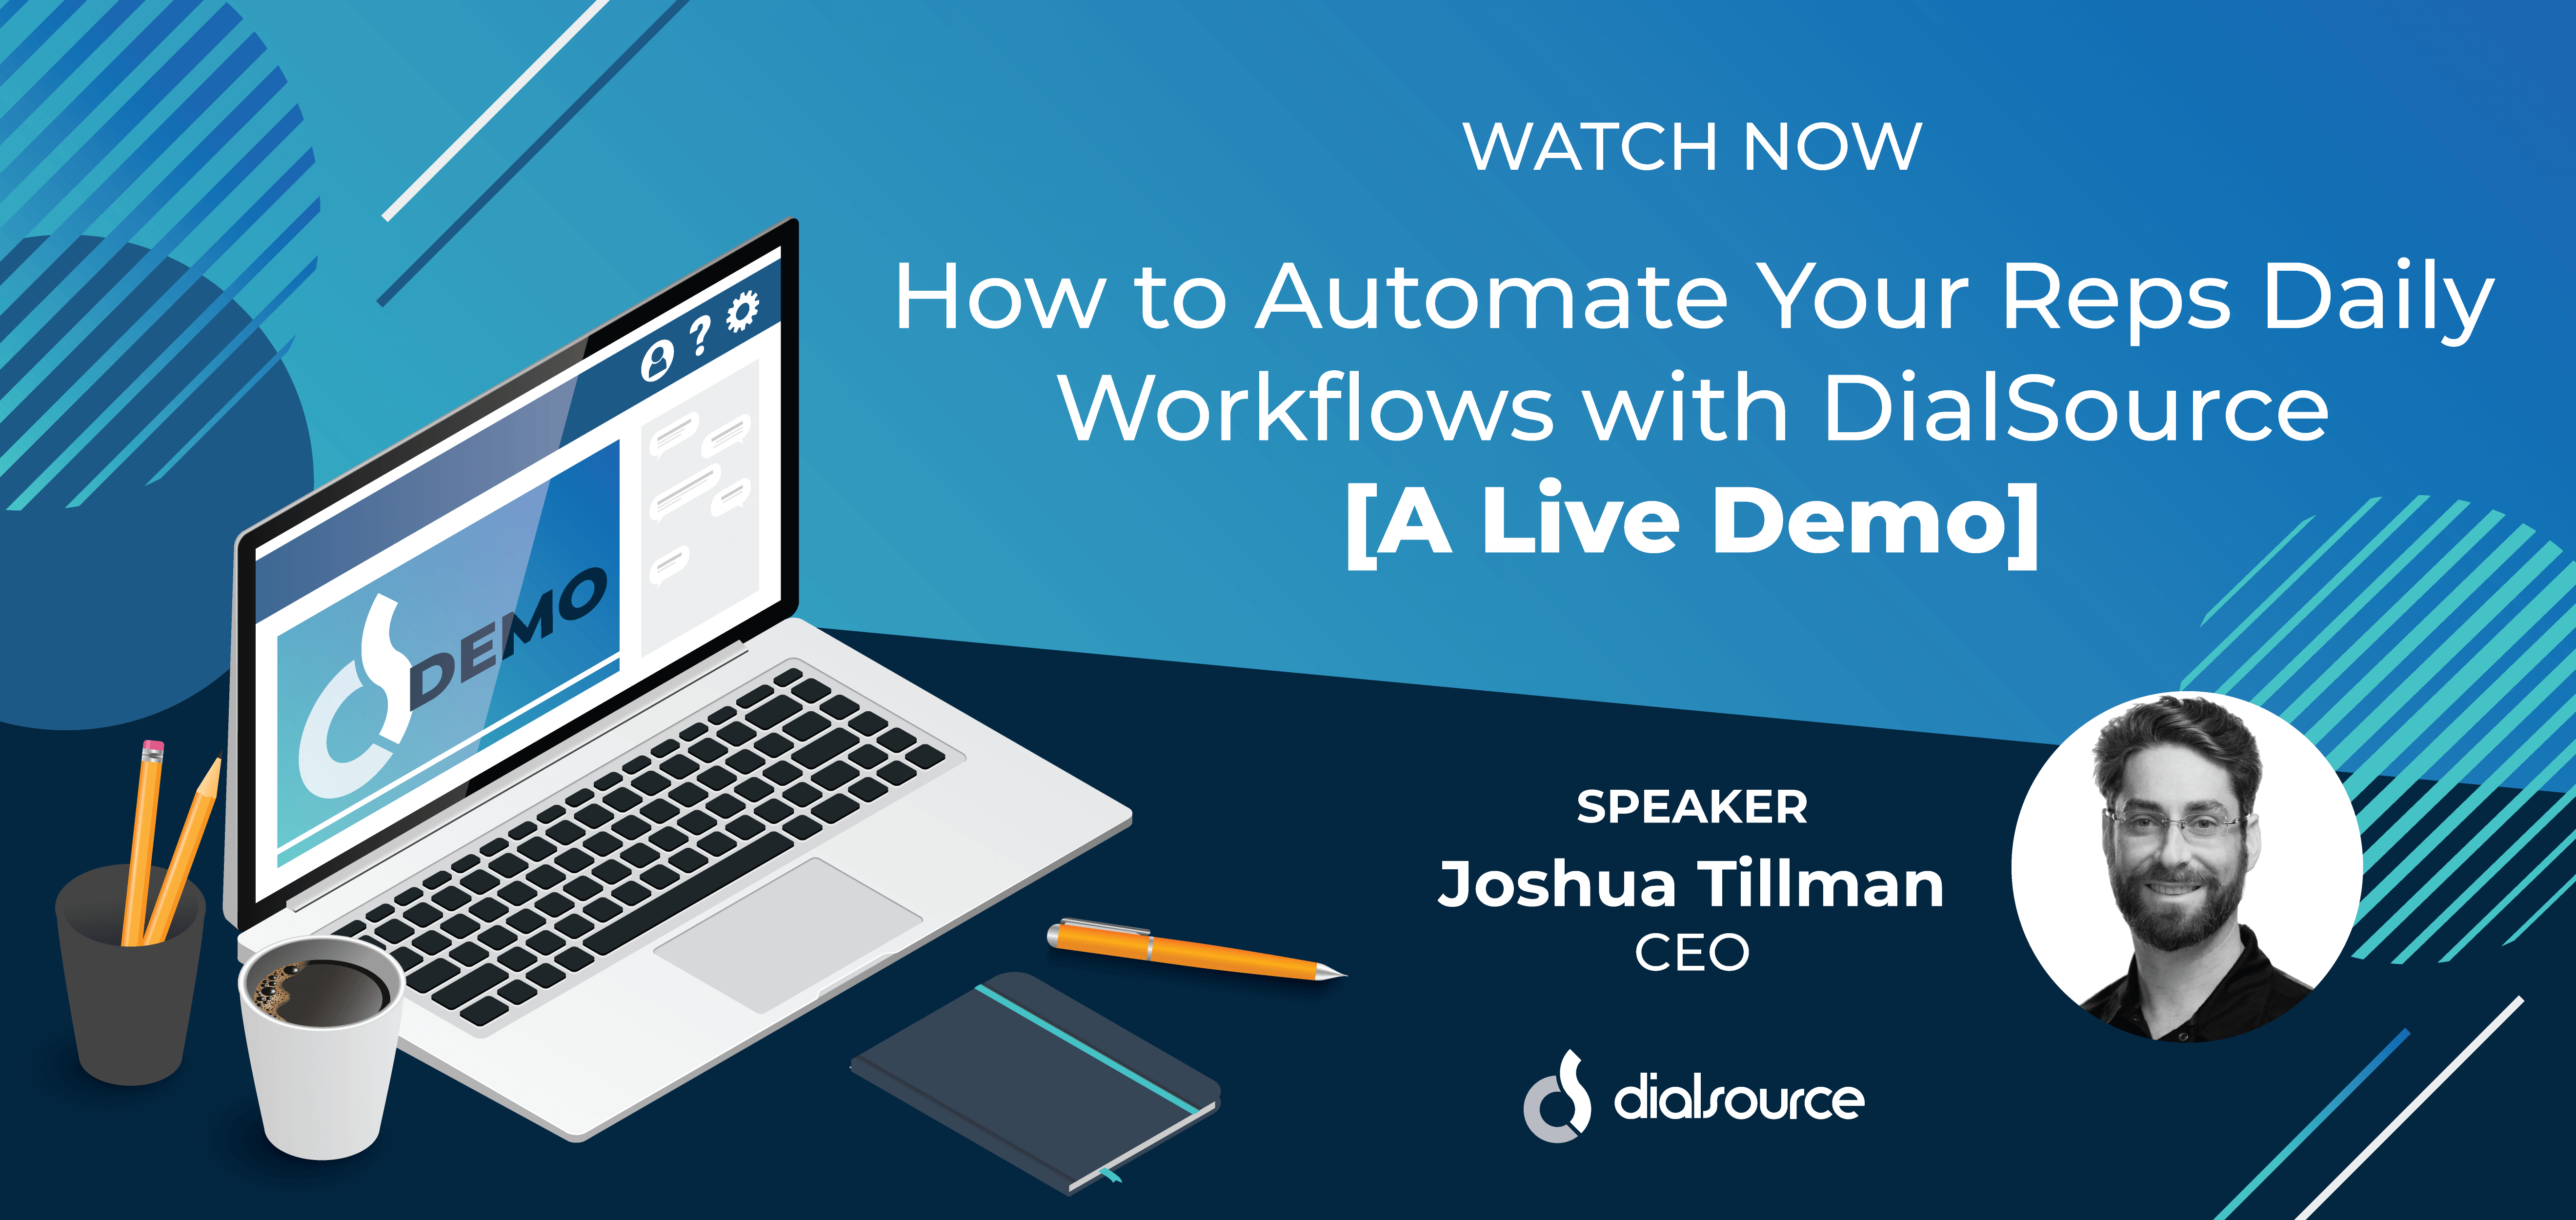 How to Automate Your Reps Daily Workflows with DialSource